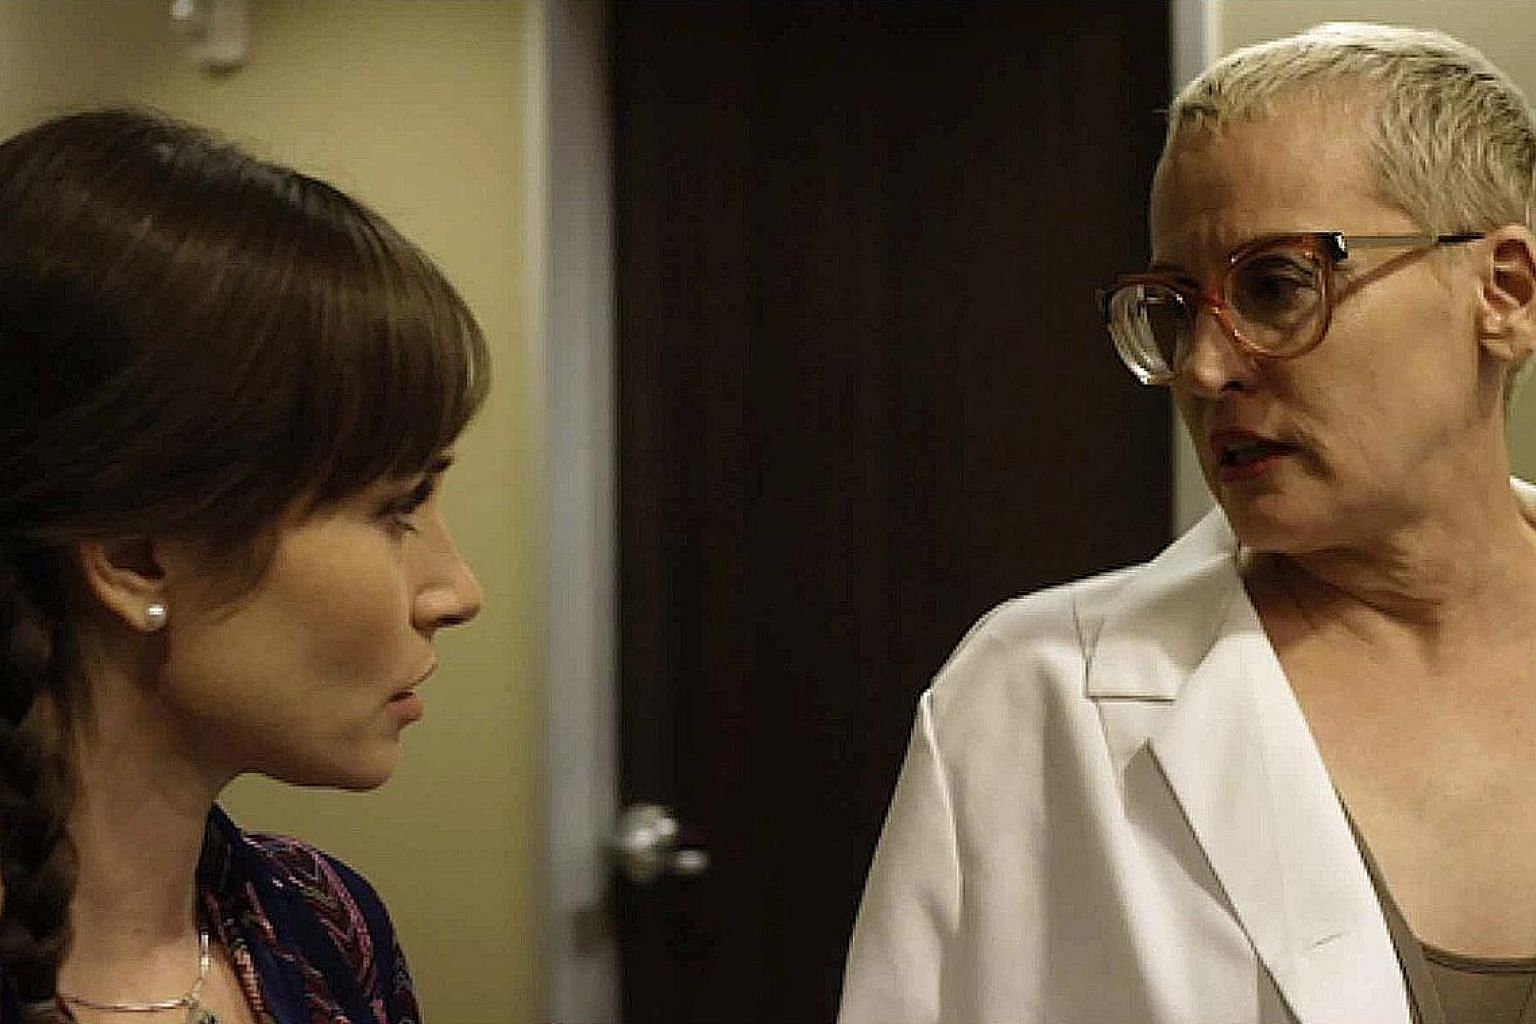 Jocelin Donahue (left) and Lori Petty star in Dead Awake.